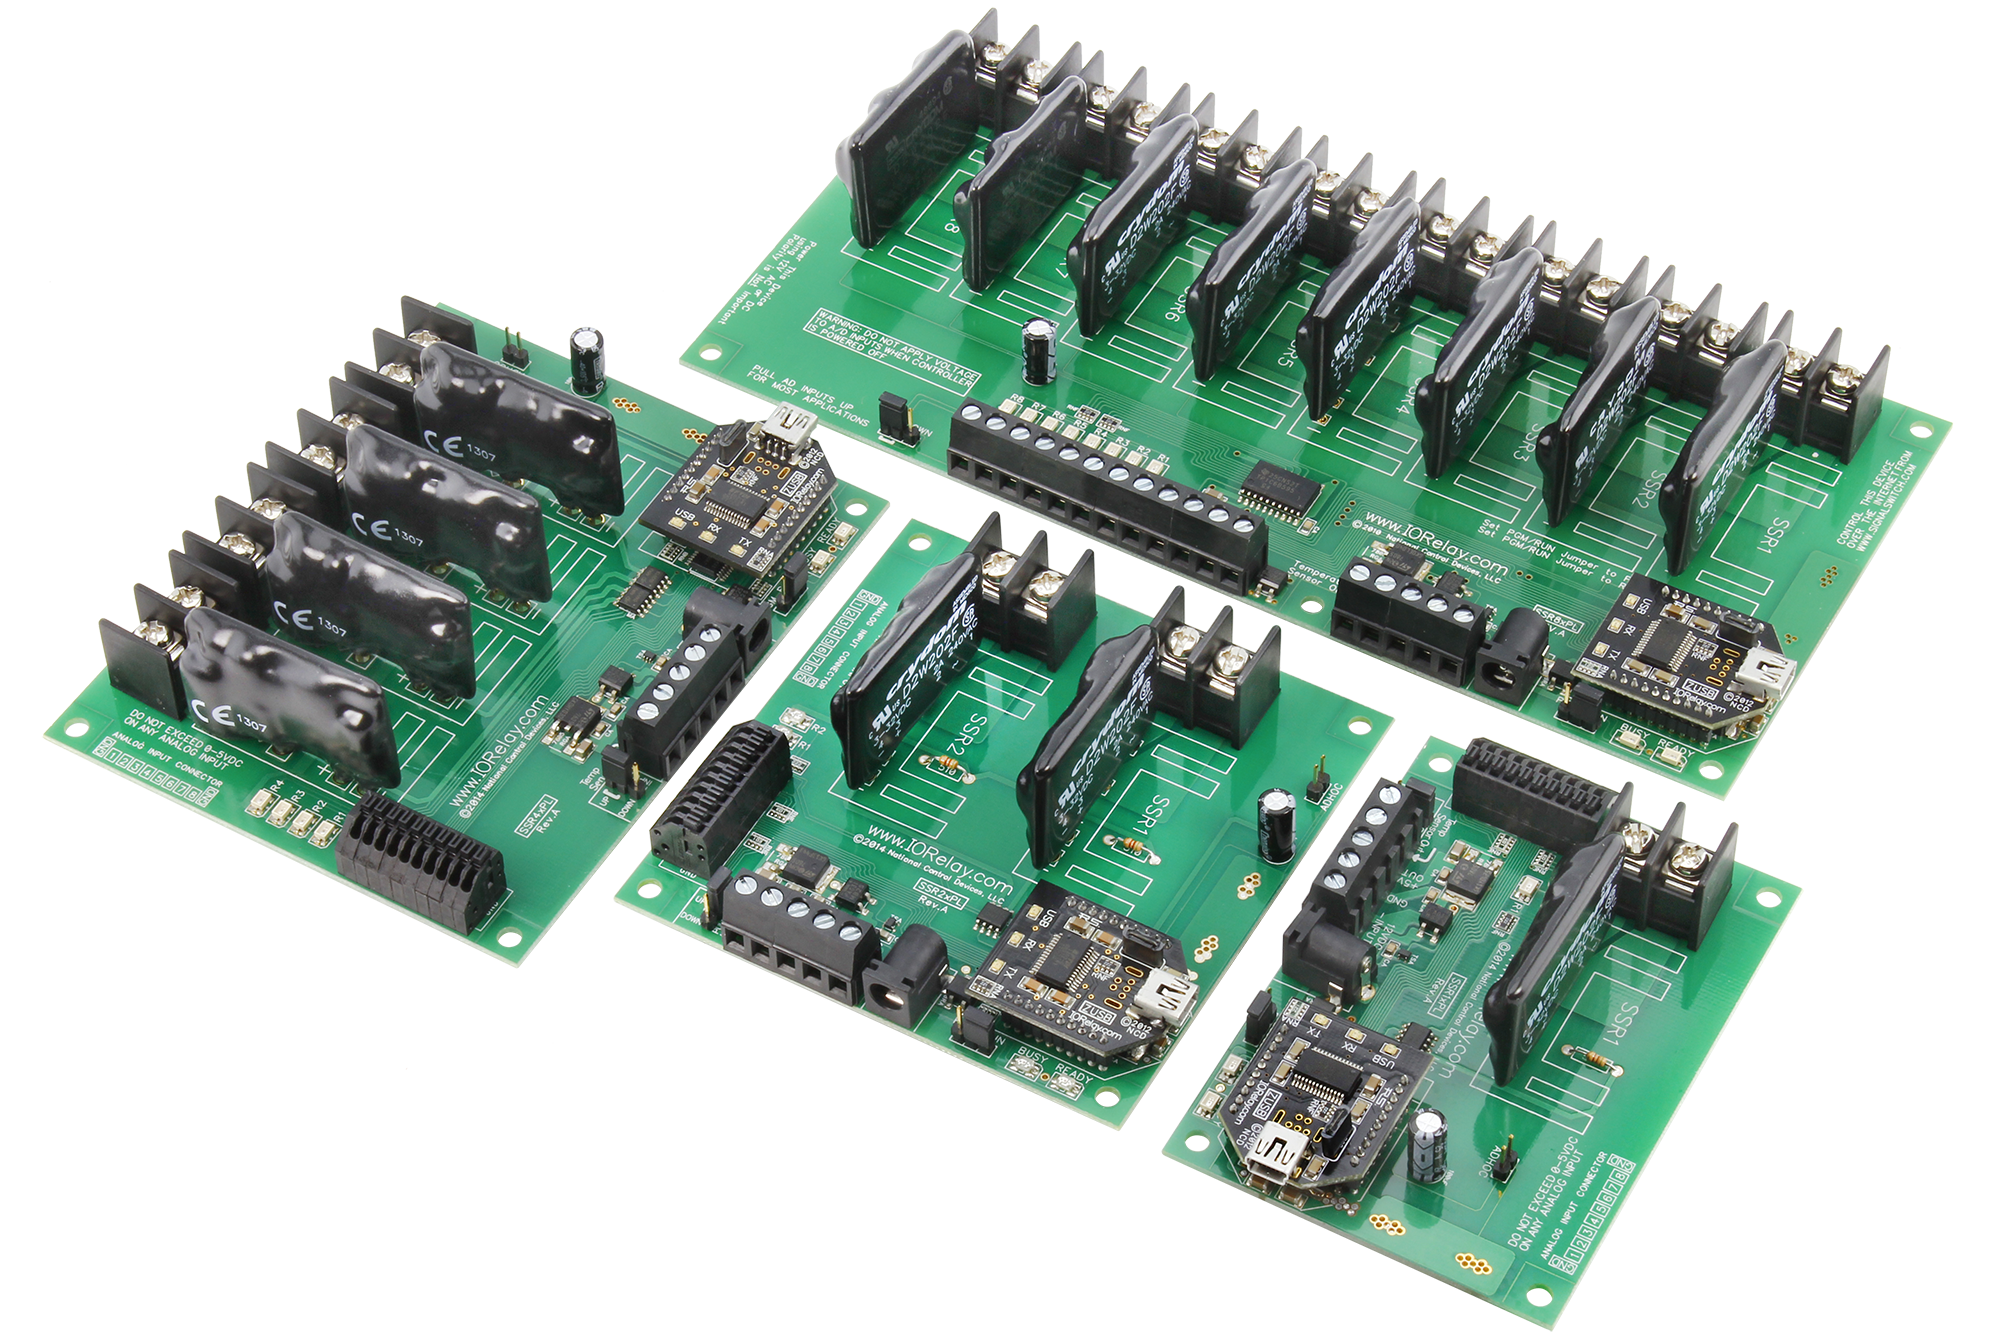 Usb relay board high power usb relays for industrial applications usb relay board with solid state relays and analog to digital conversion sciox Images